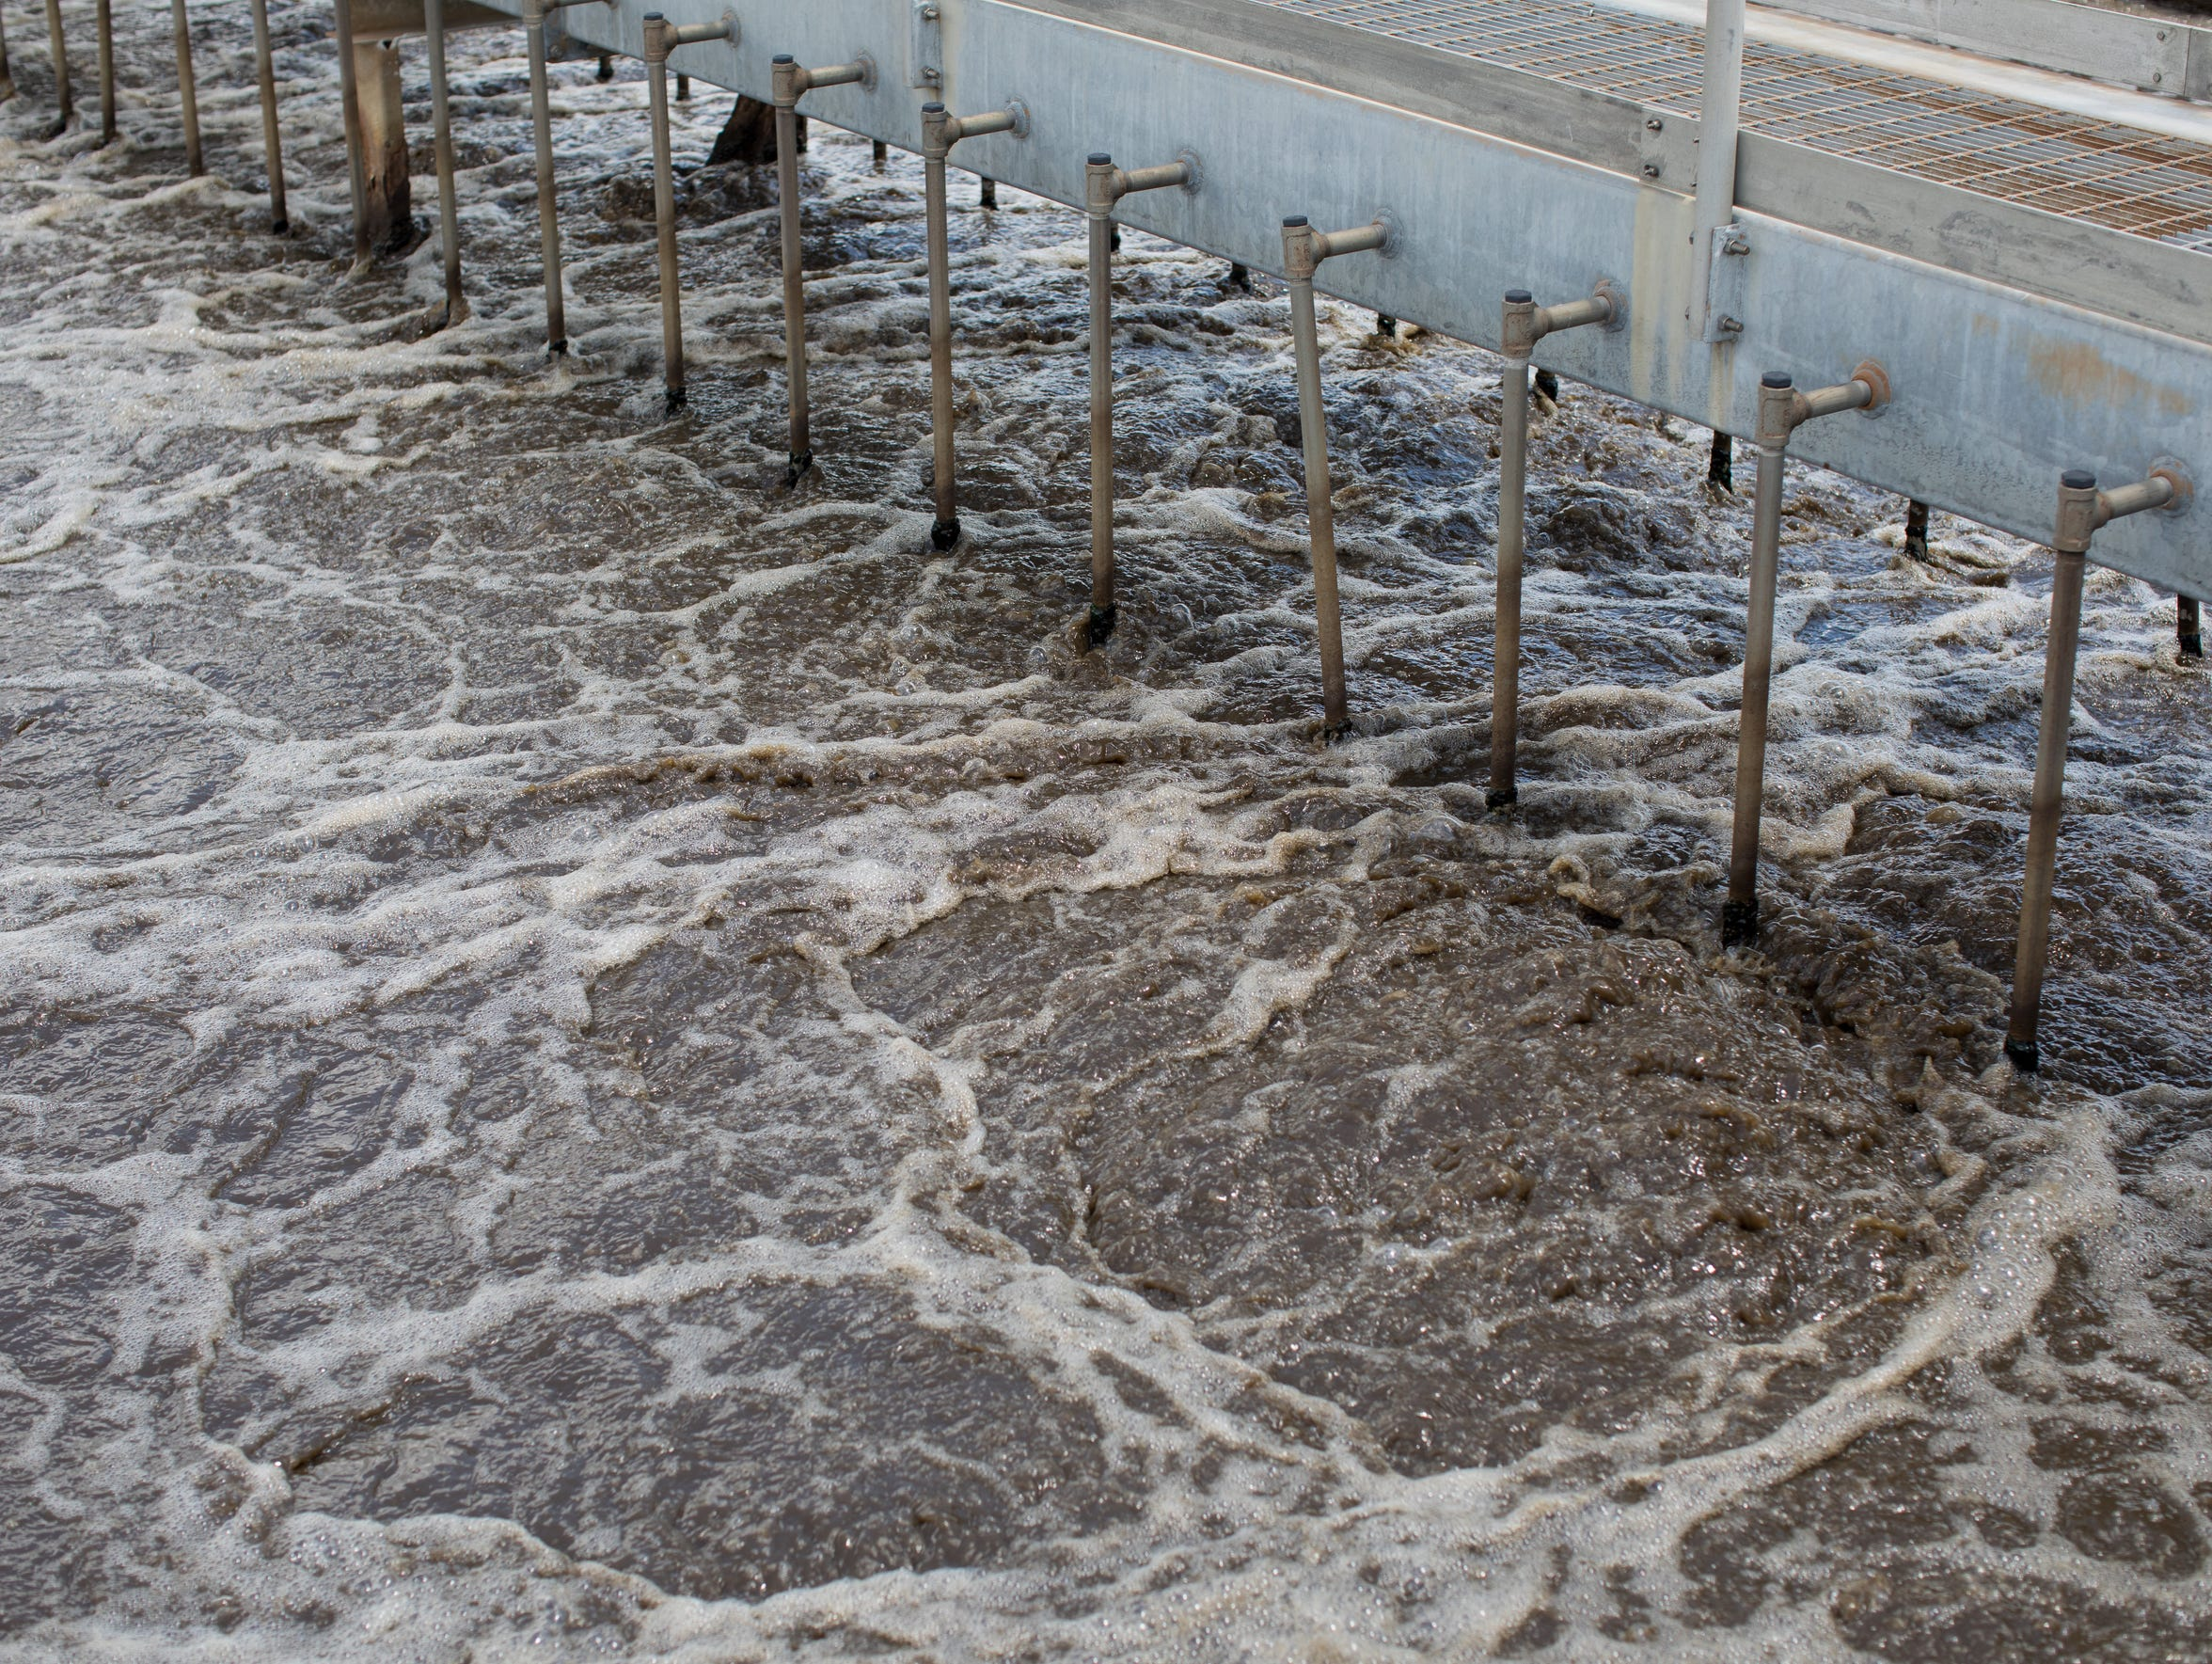 Wastewater collected  in Corpus Christi is treated